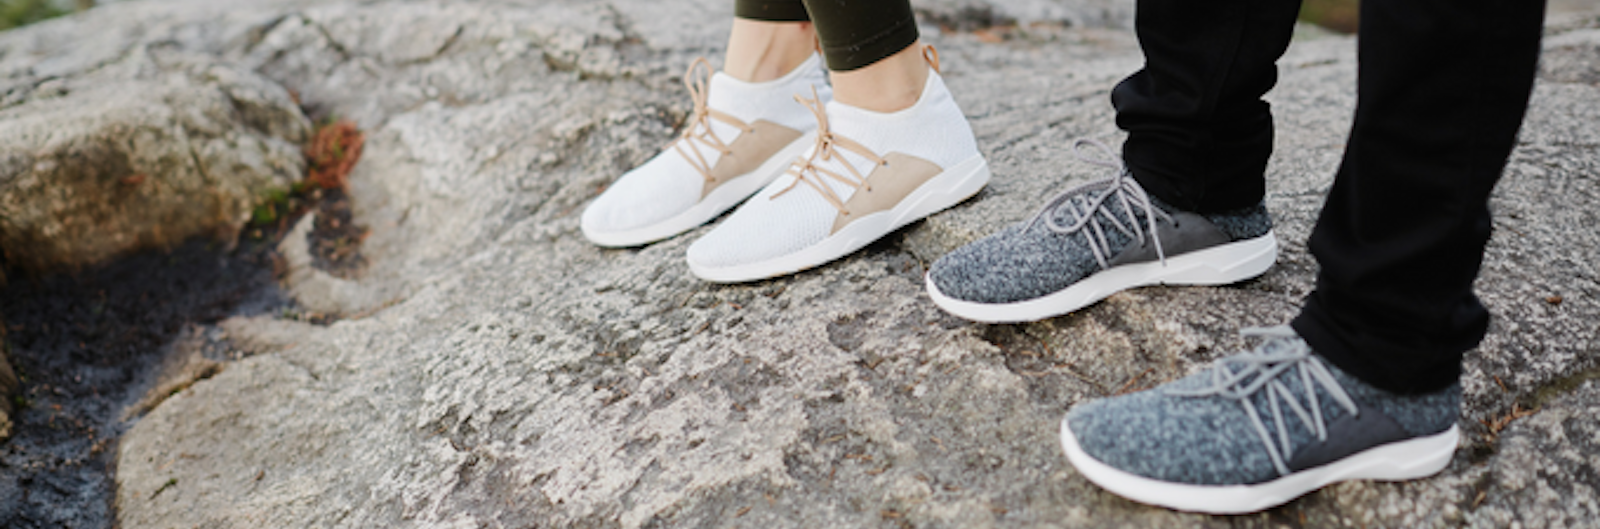 The World's First Fully Waterproof Knit Sneakers Are Finally Here